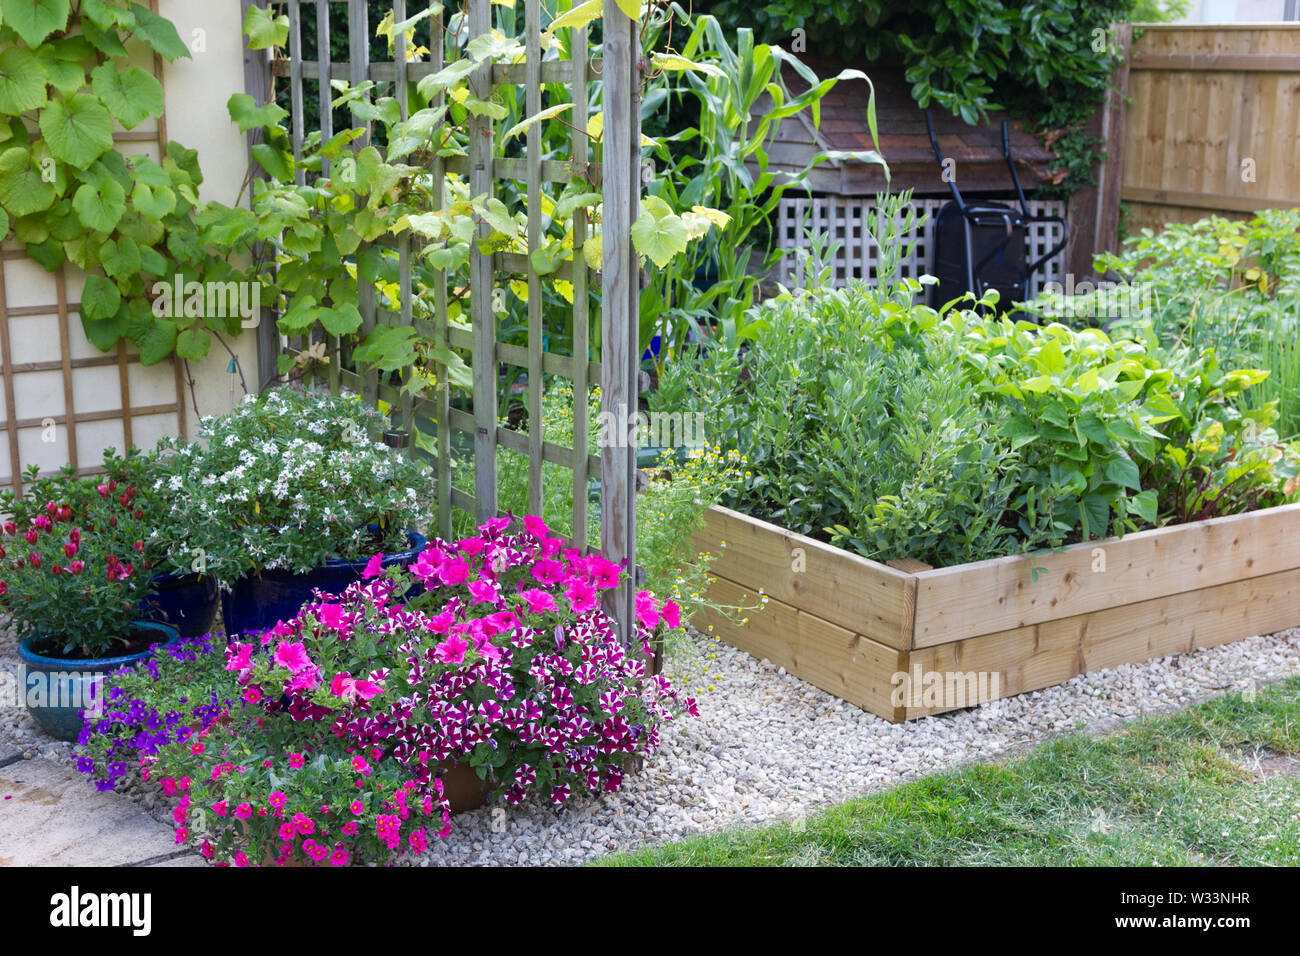 Vegetables And Flowers Growing In A Small Garden Stock Photo